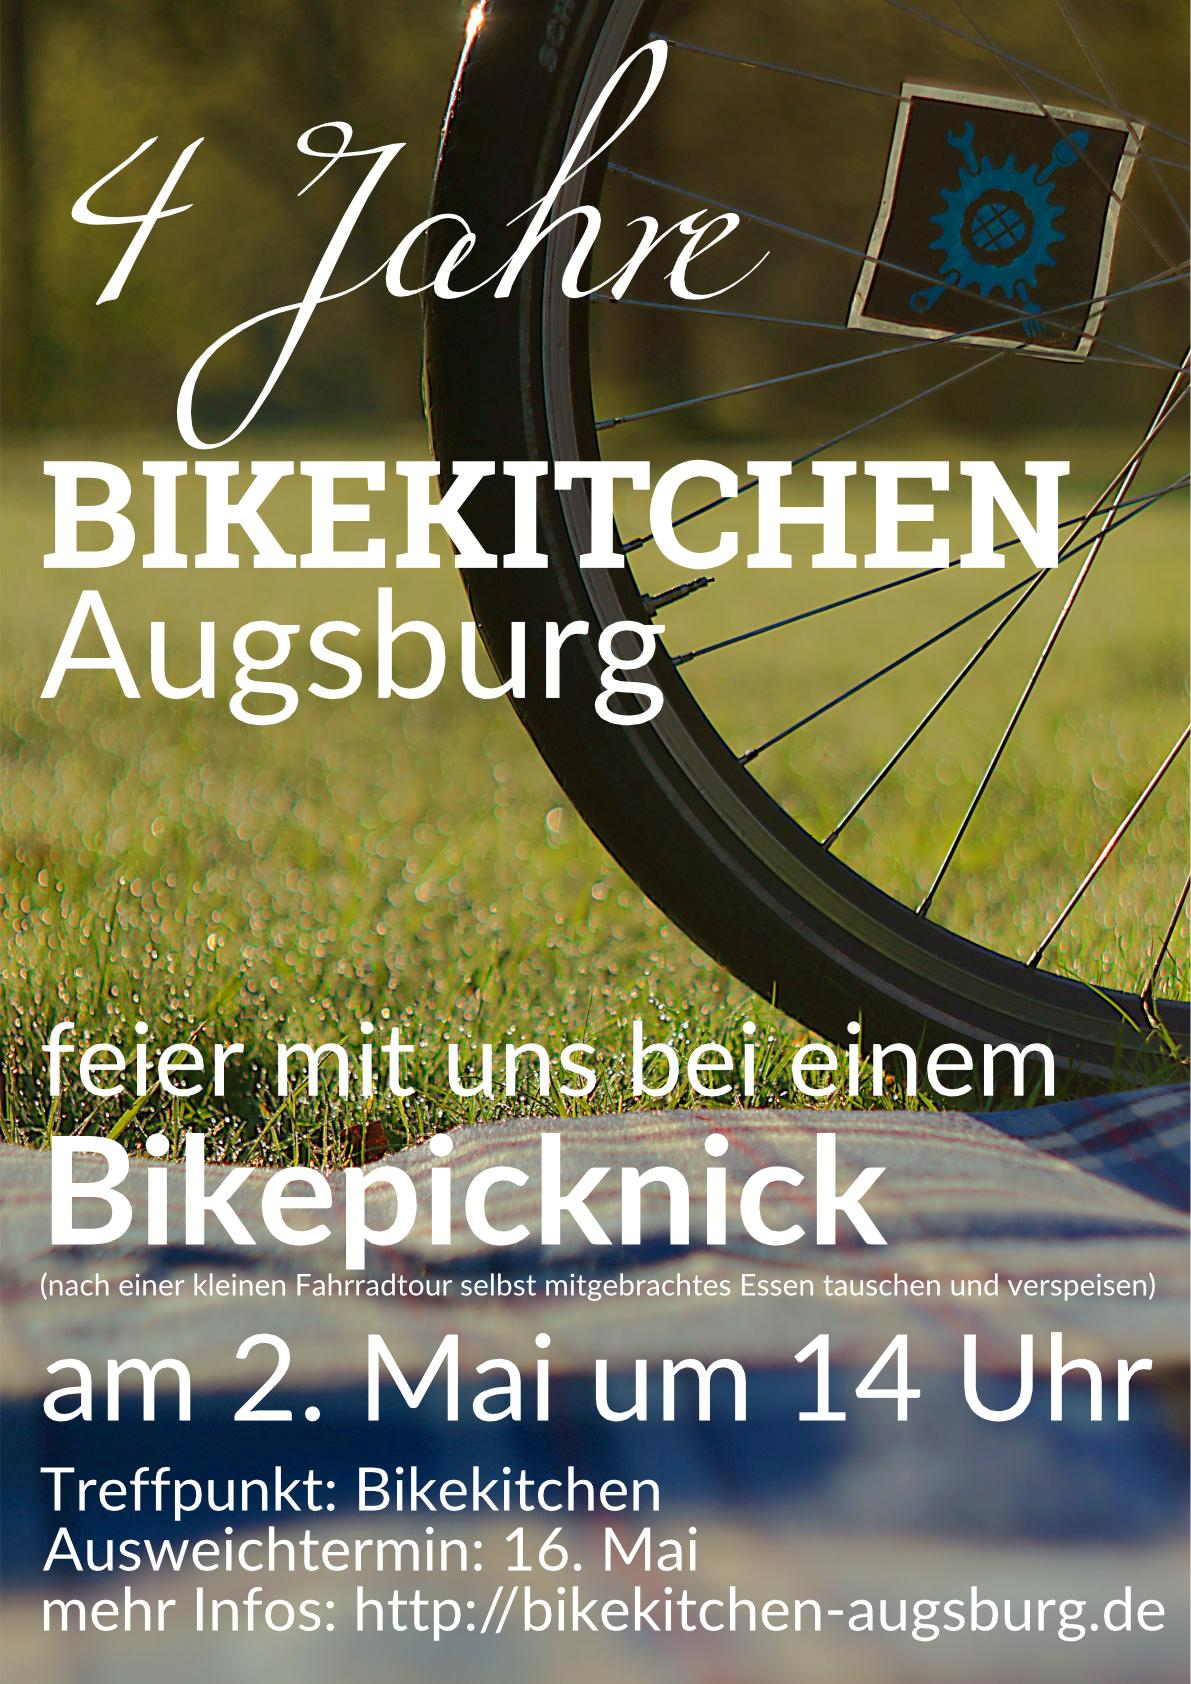 vier ganze jahre bikekitchen augsburg. Black Bedroom Furniture Sets. Home Design Ideas